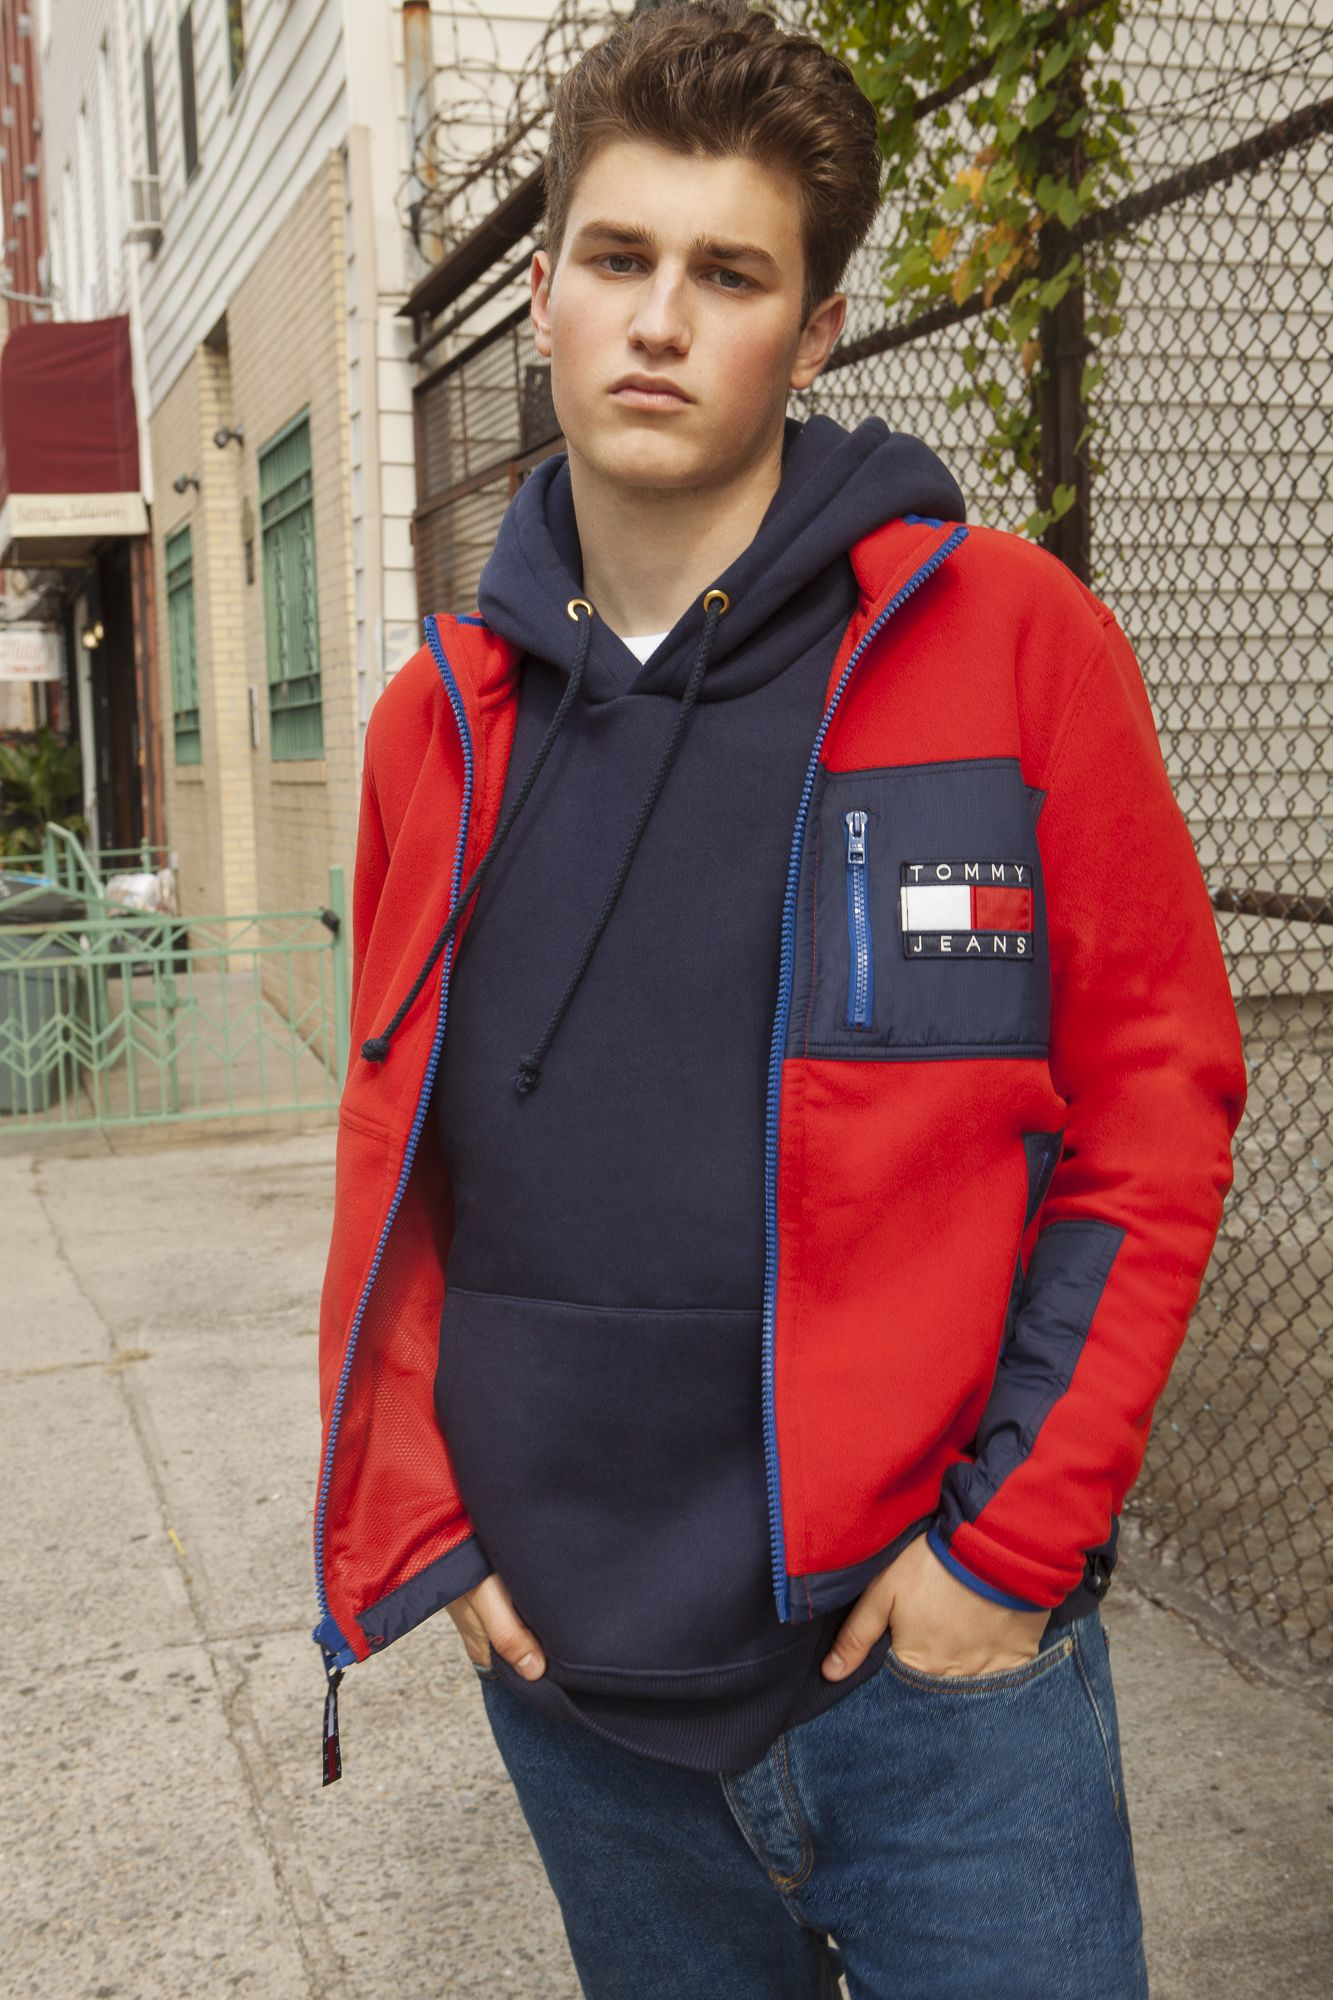 b75bf3c0748b The new Tommy Jeans 4.0 as seen in Brooklyn